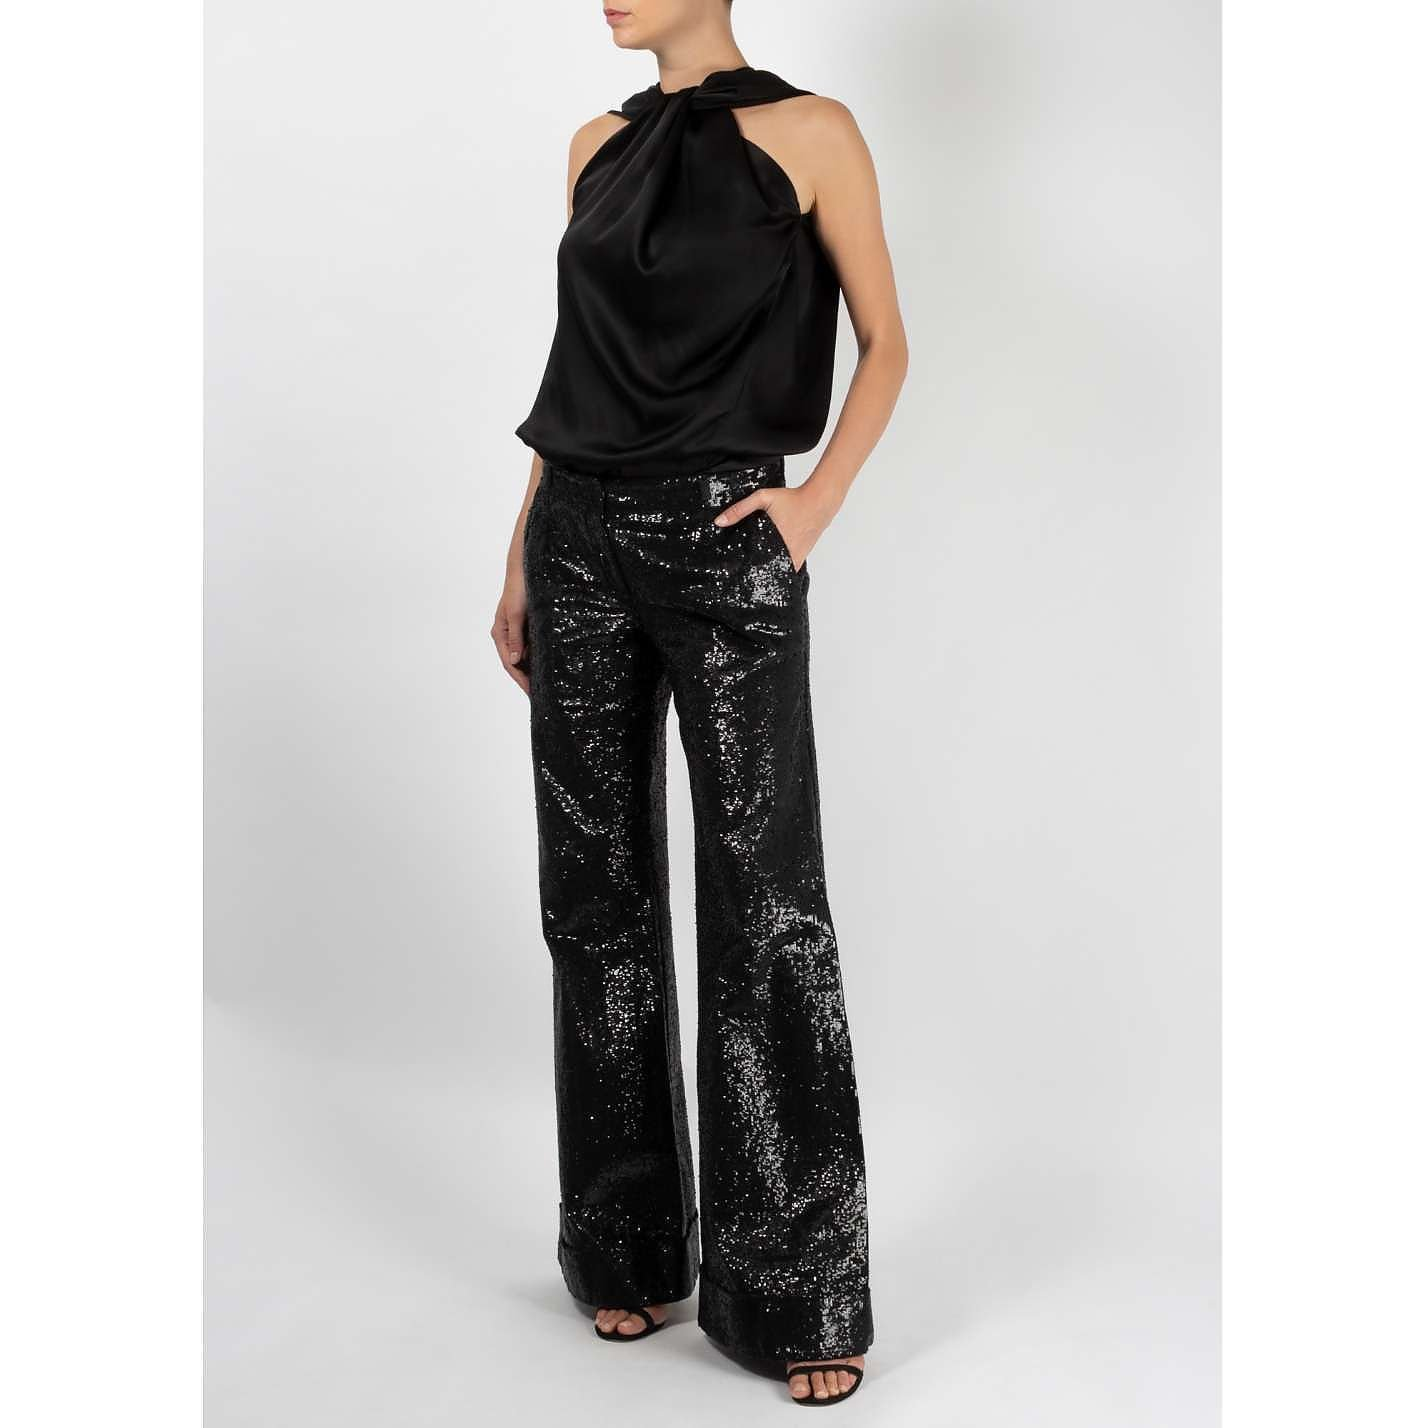 DOLCE & GABBANA Flared Sequin Trousers